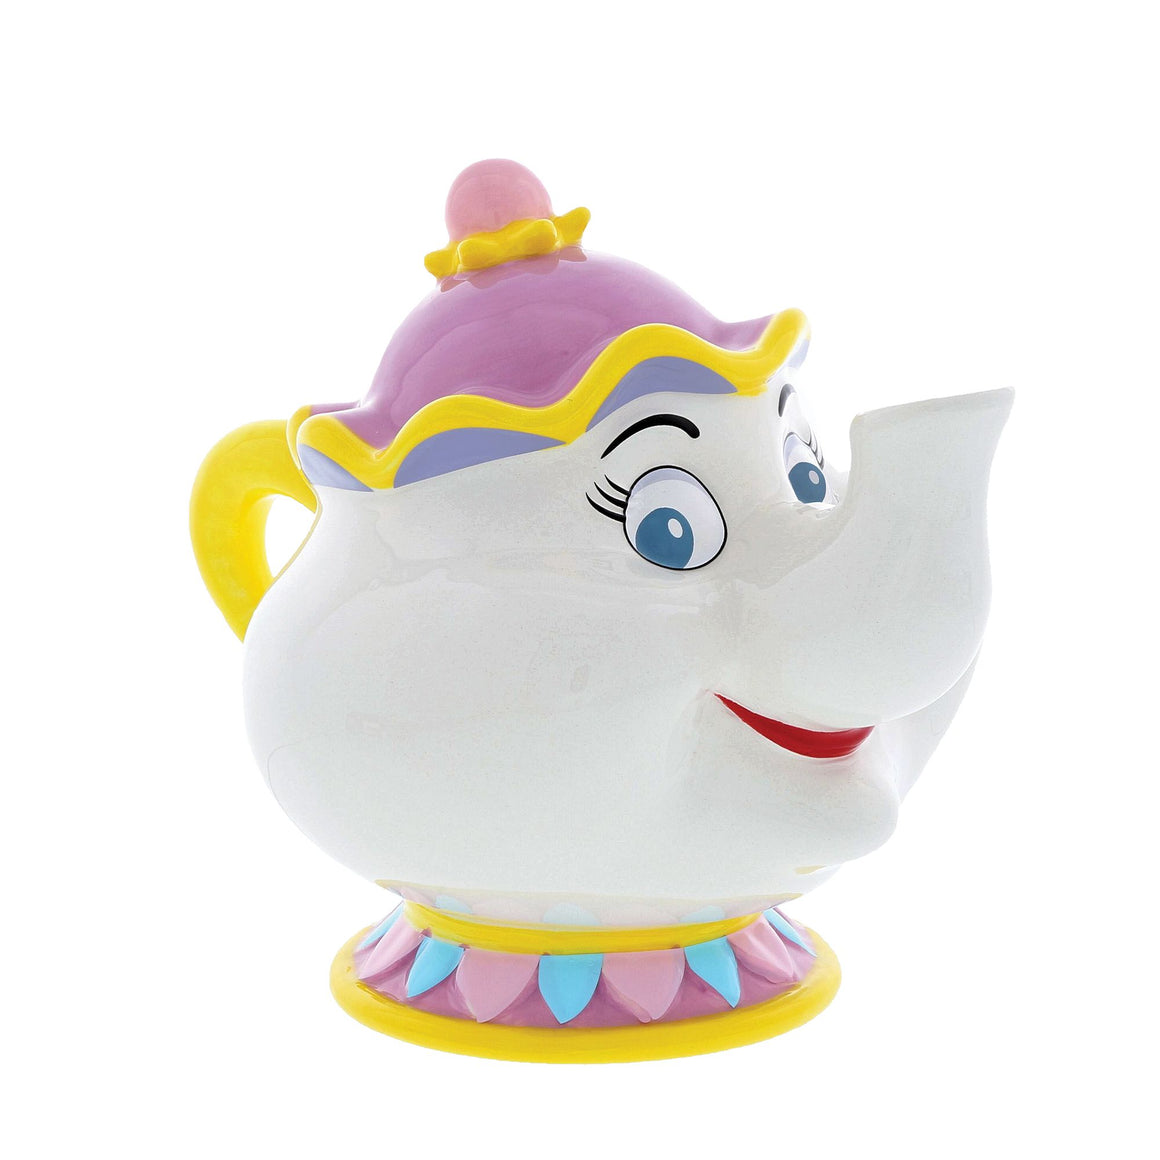 Something There - Mrs Potts Money Bank Figurine by Enchanting Disney